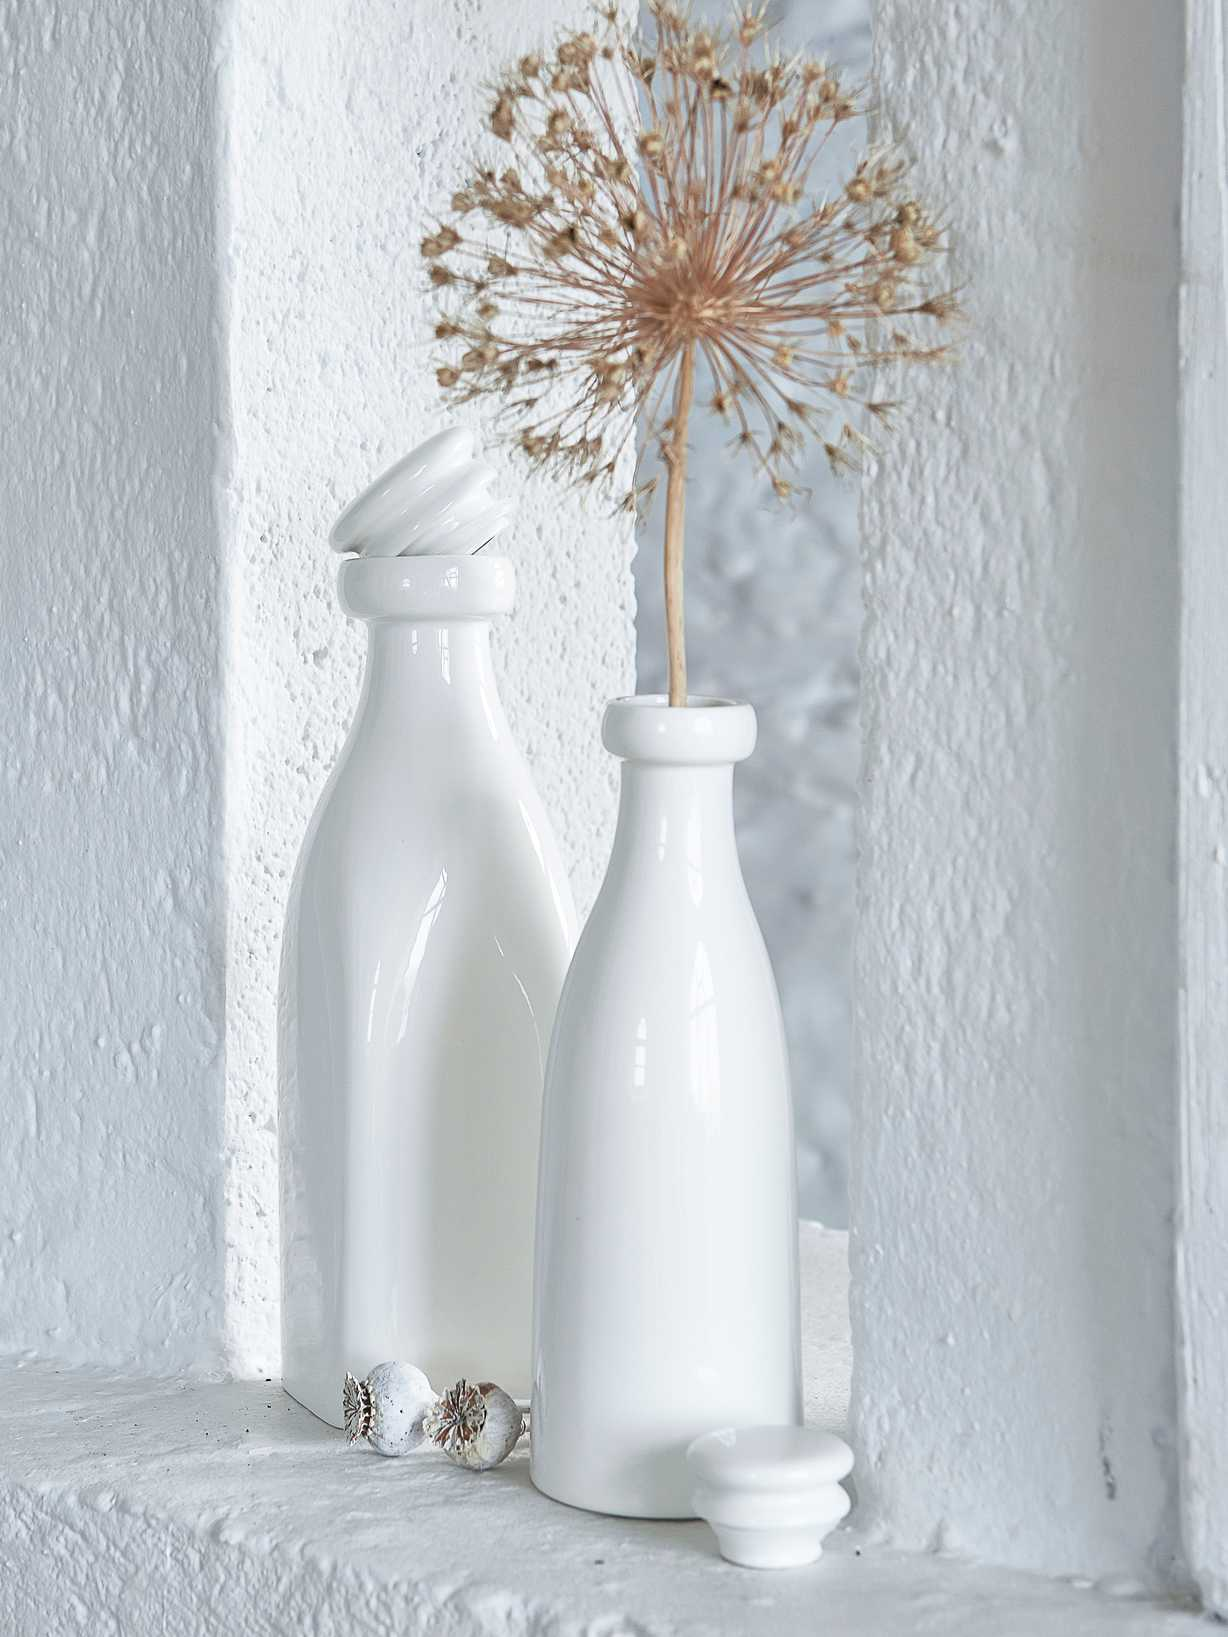 Nordic House White Ceramic Bottles